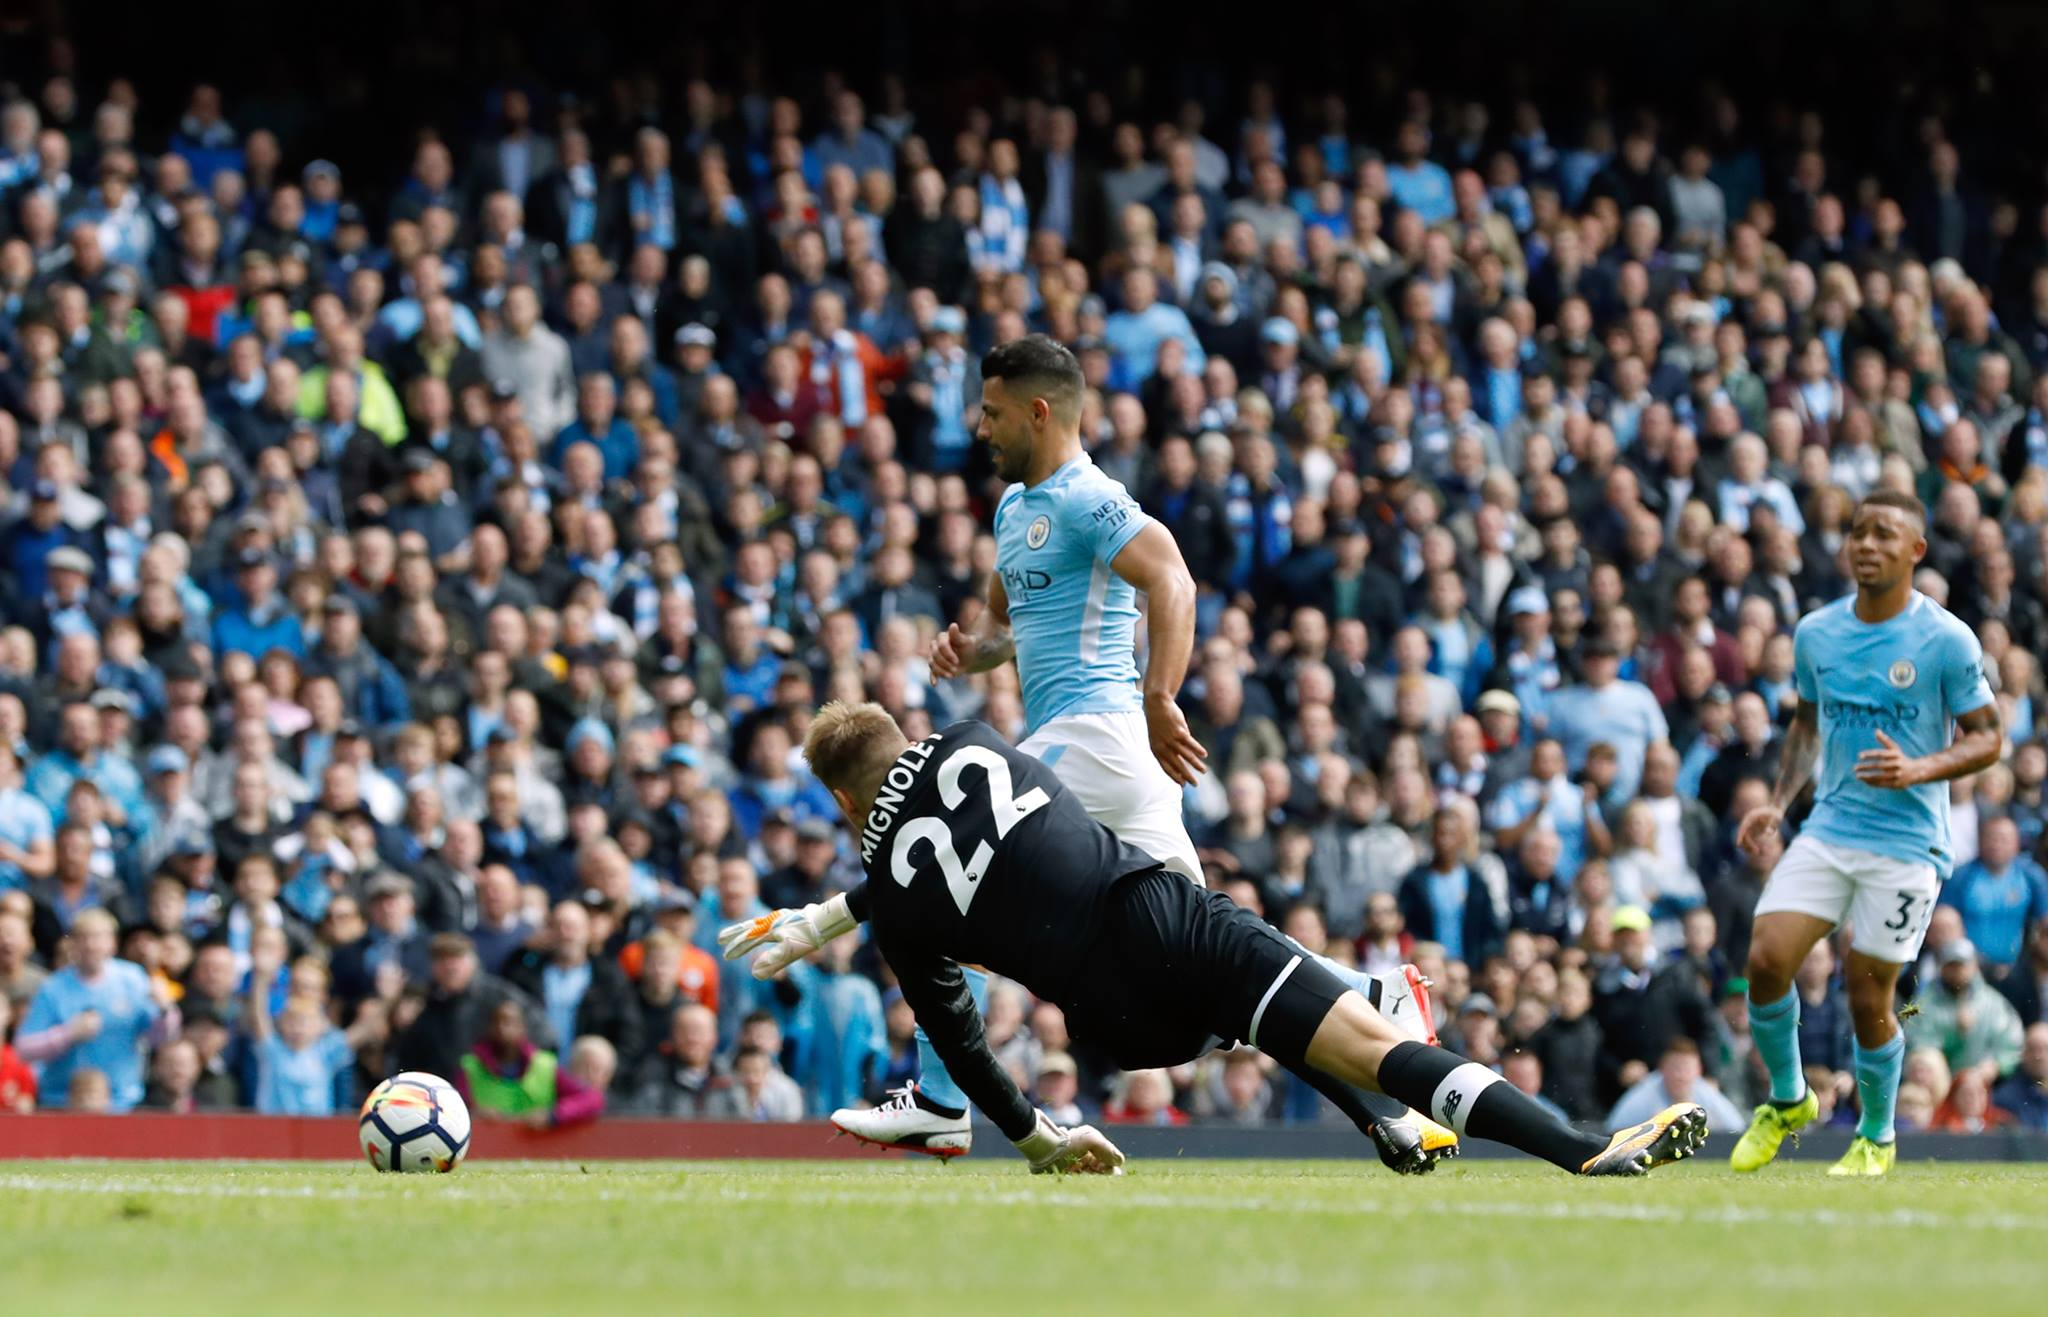 Premier League top scorers: Lukaku, Morata, Aguero level as race hots up